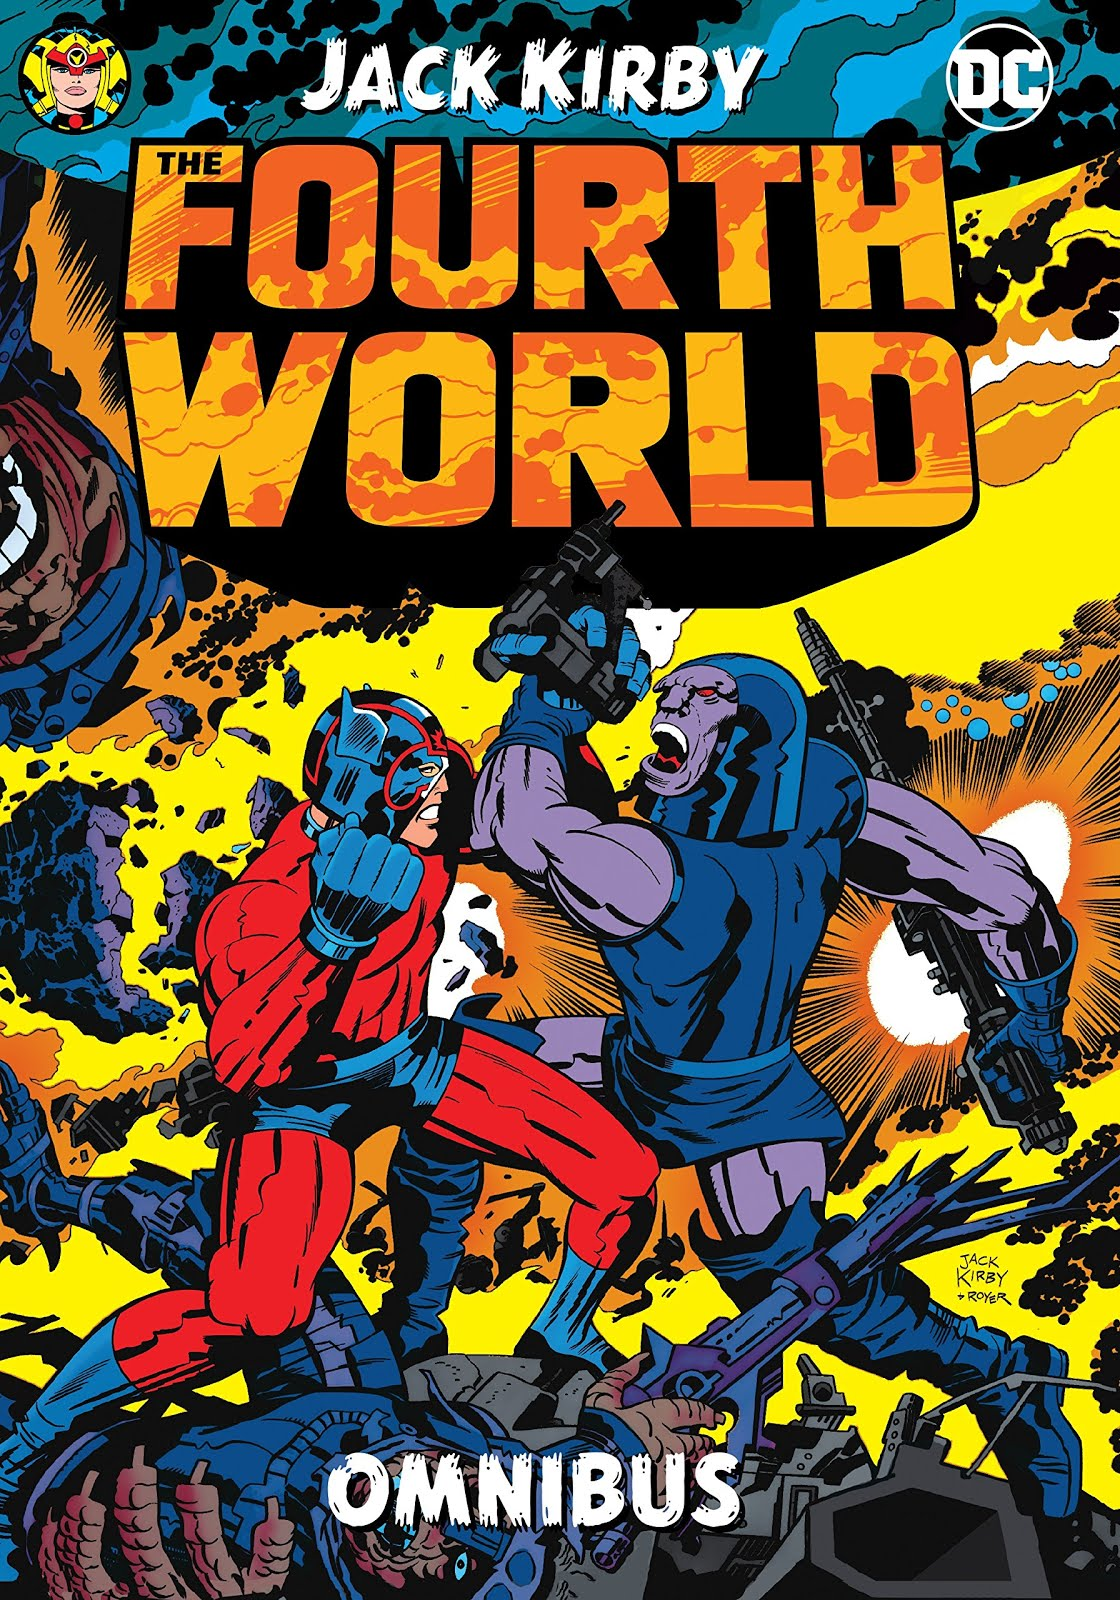 The FOURTH WORLD!